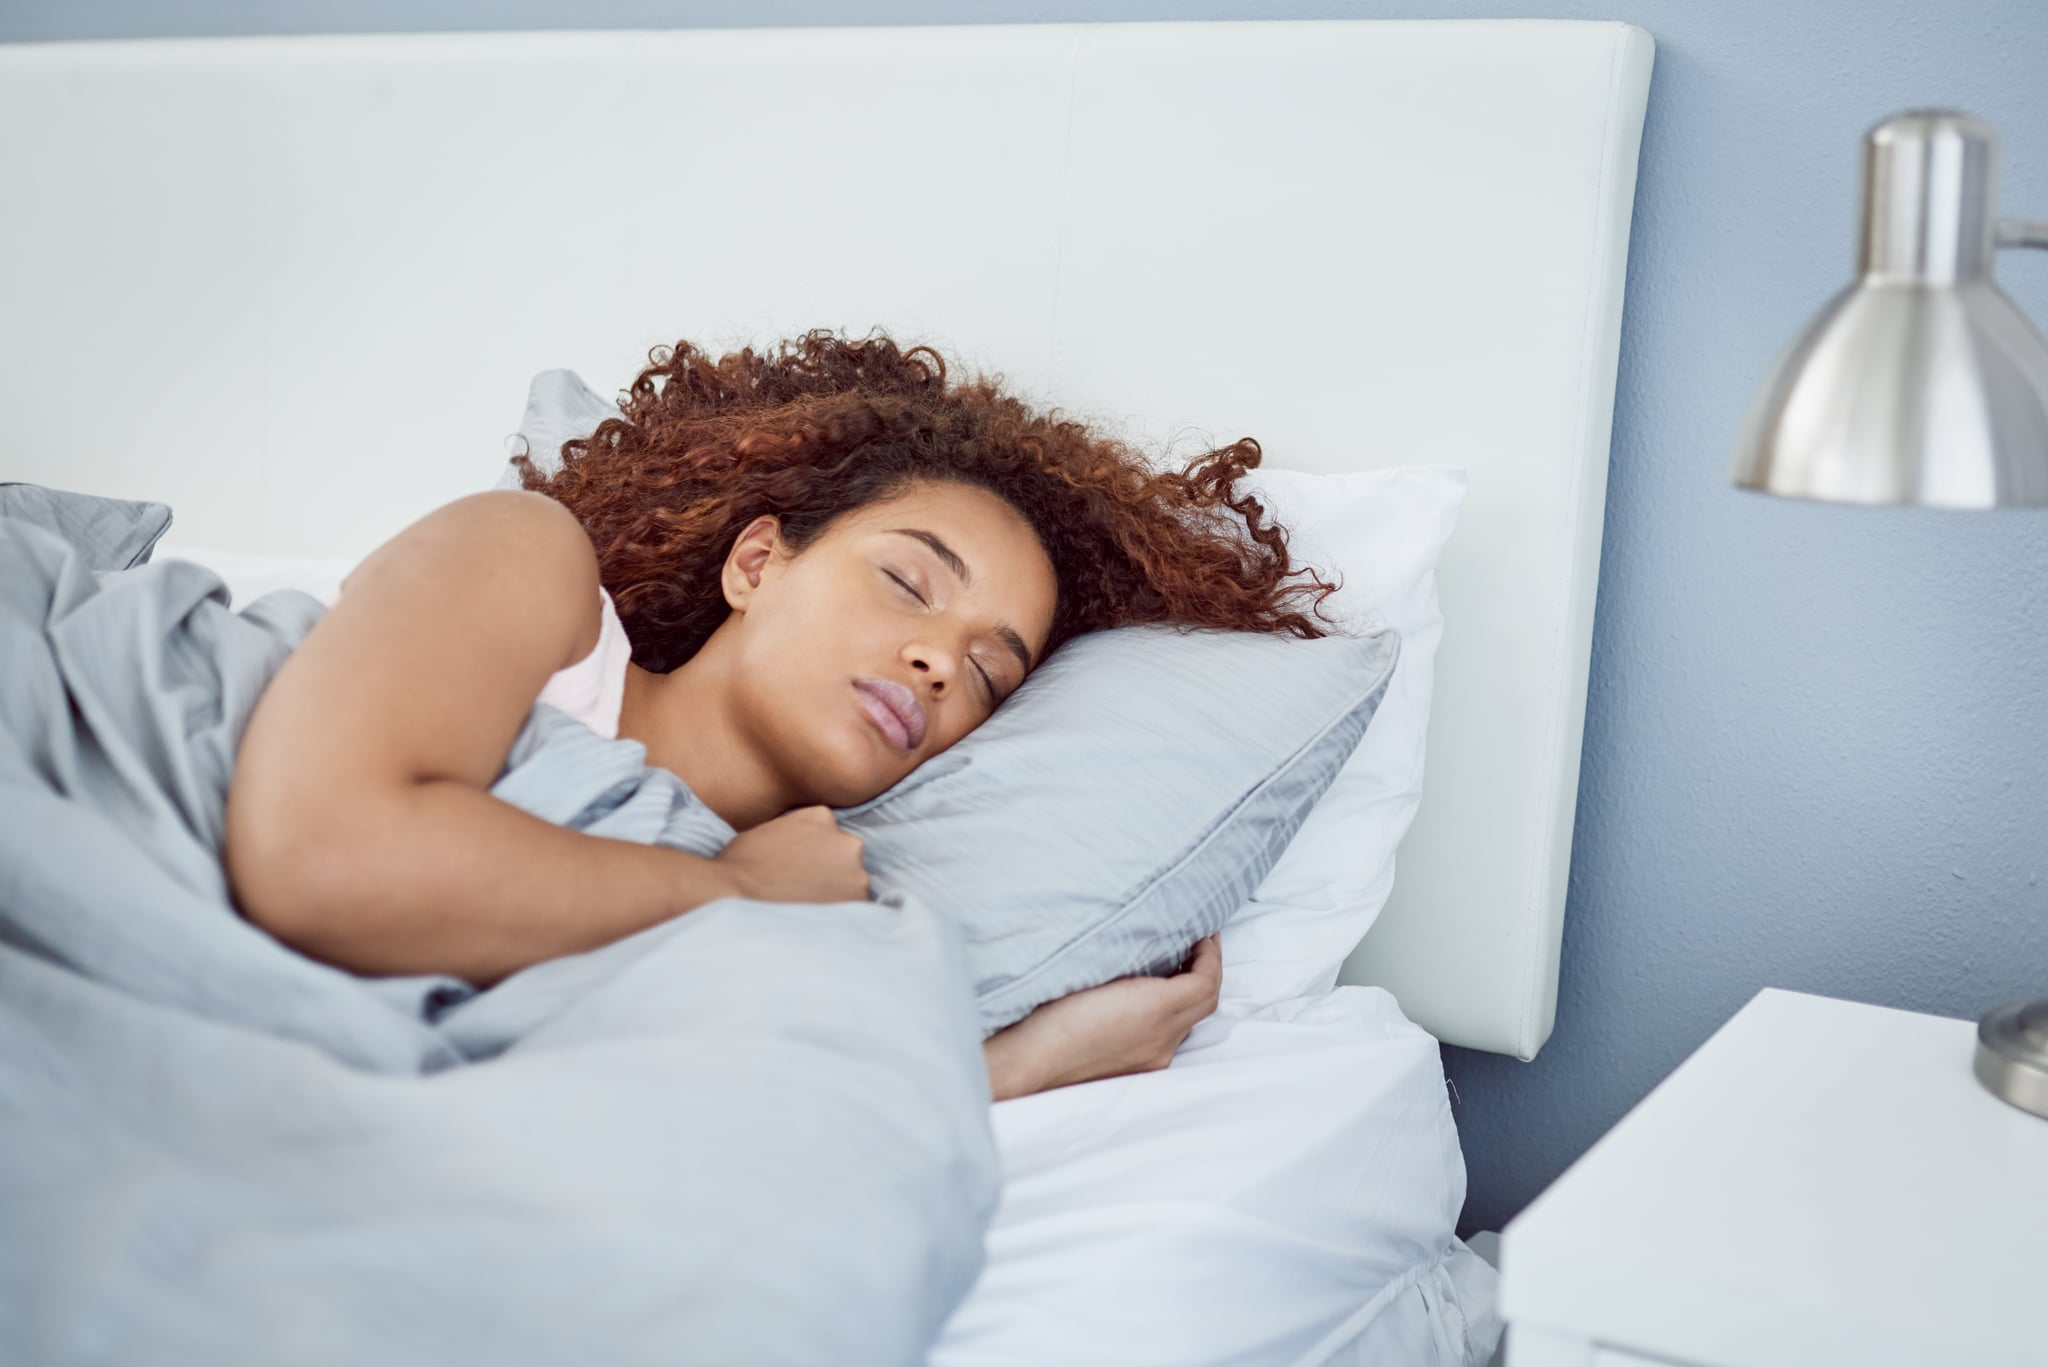 We Asked an Expert What the Best Sleep Position Is For Optimal Rest — Here's What She Said